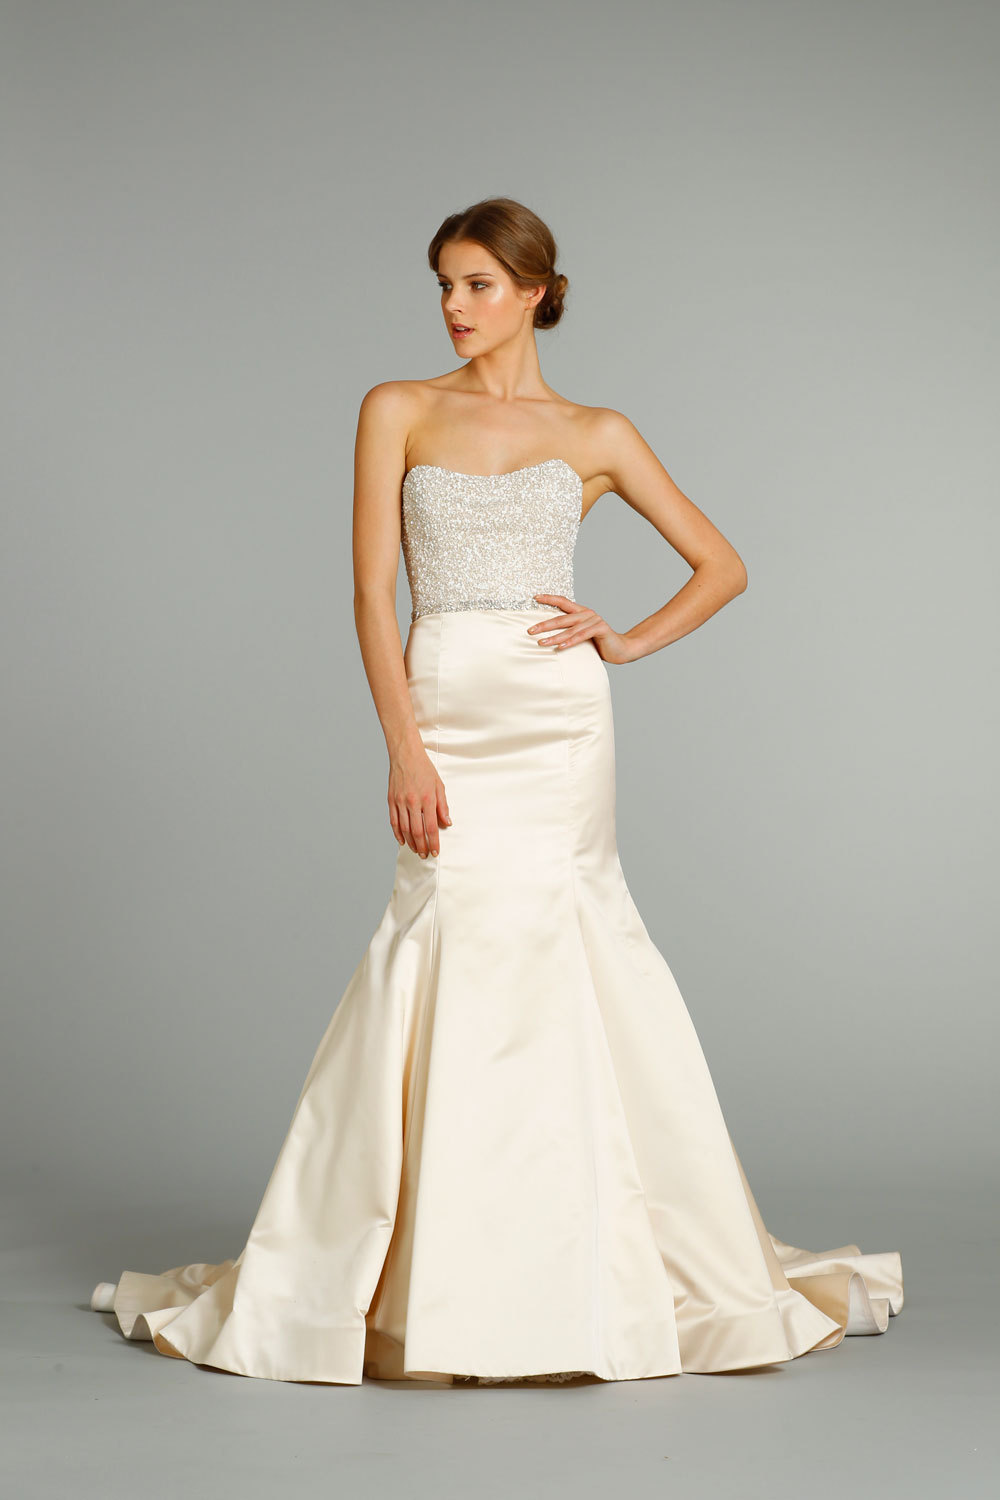 Fall-2012-wedding-dresses-jlm-couture-bridal-jim-hjelm-8250_front.full